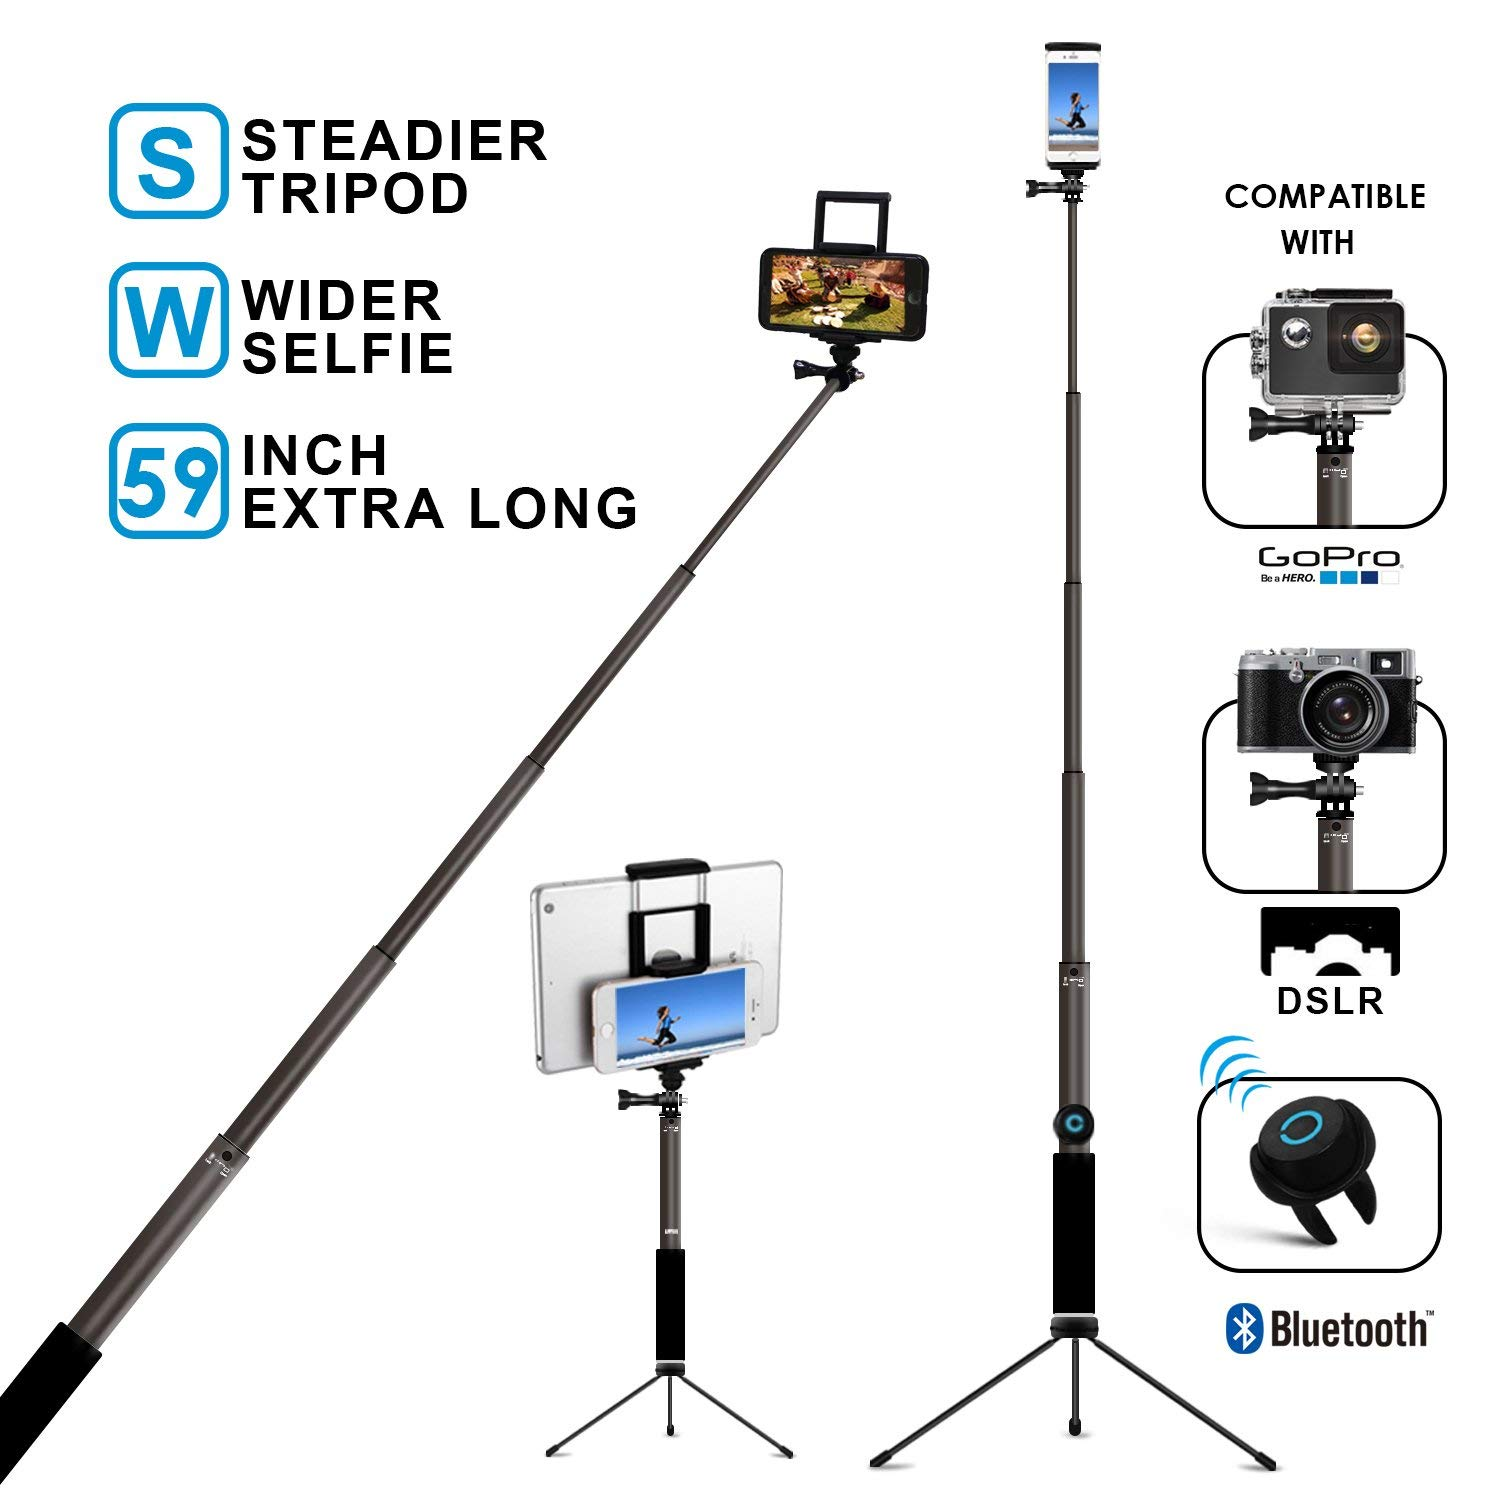 Included in camp fee: lavalier mic, smartphone holders, table-top tripod, and selfie stick with Bluetooth trigger - Retail value: $51!